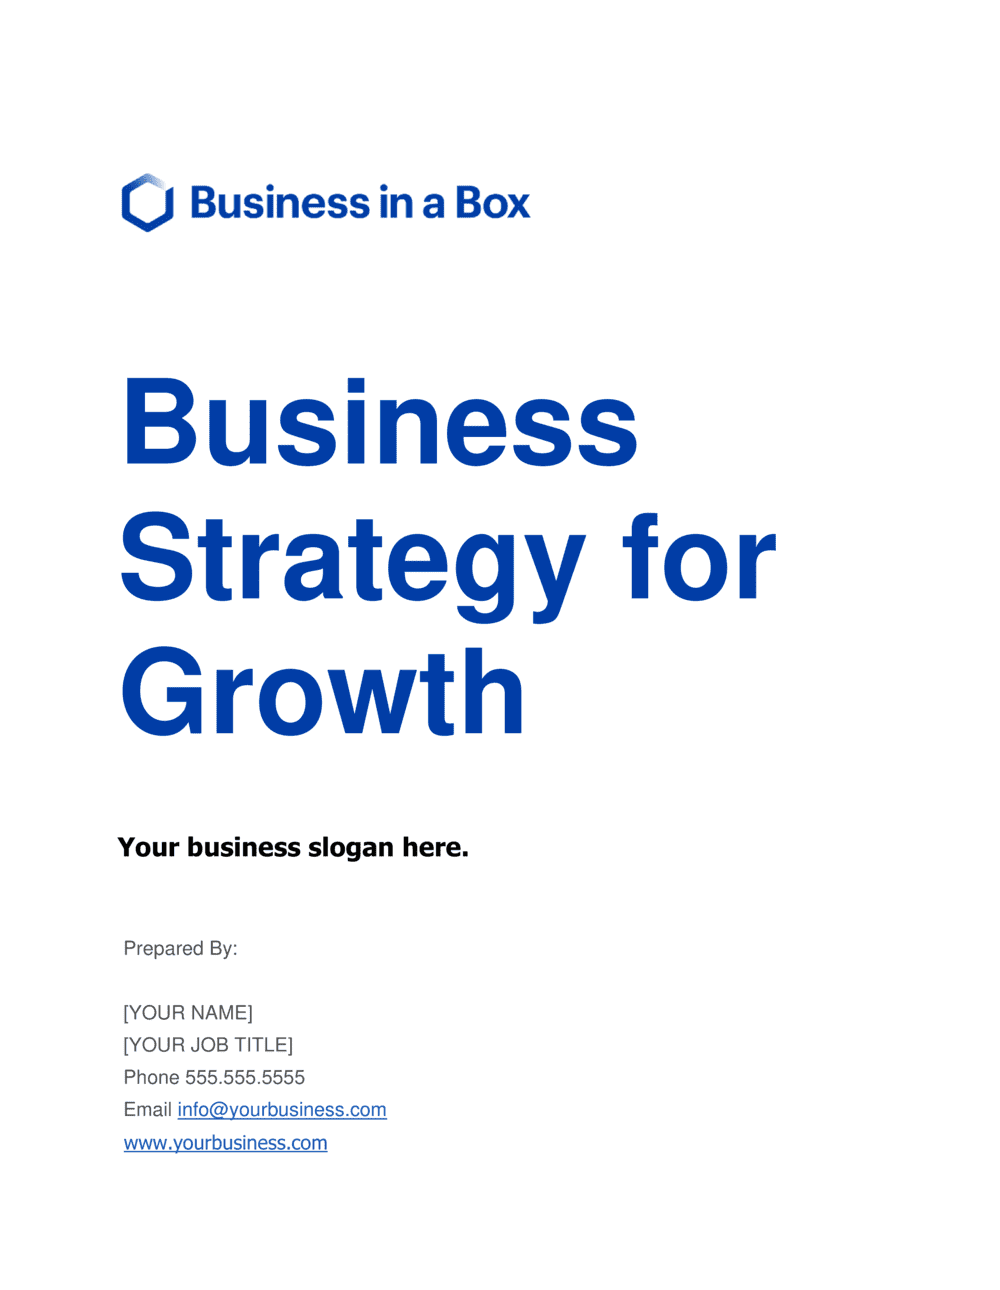 Business-in-a-Box's Business Strategy For Growth Template